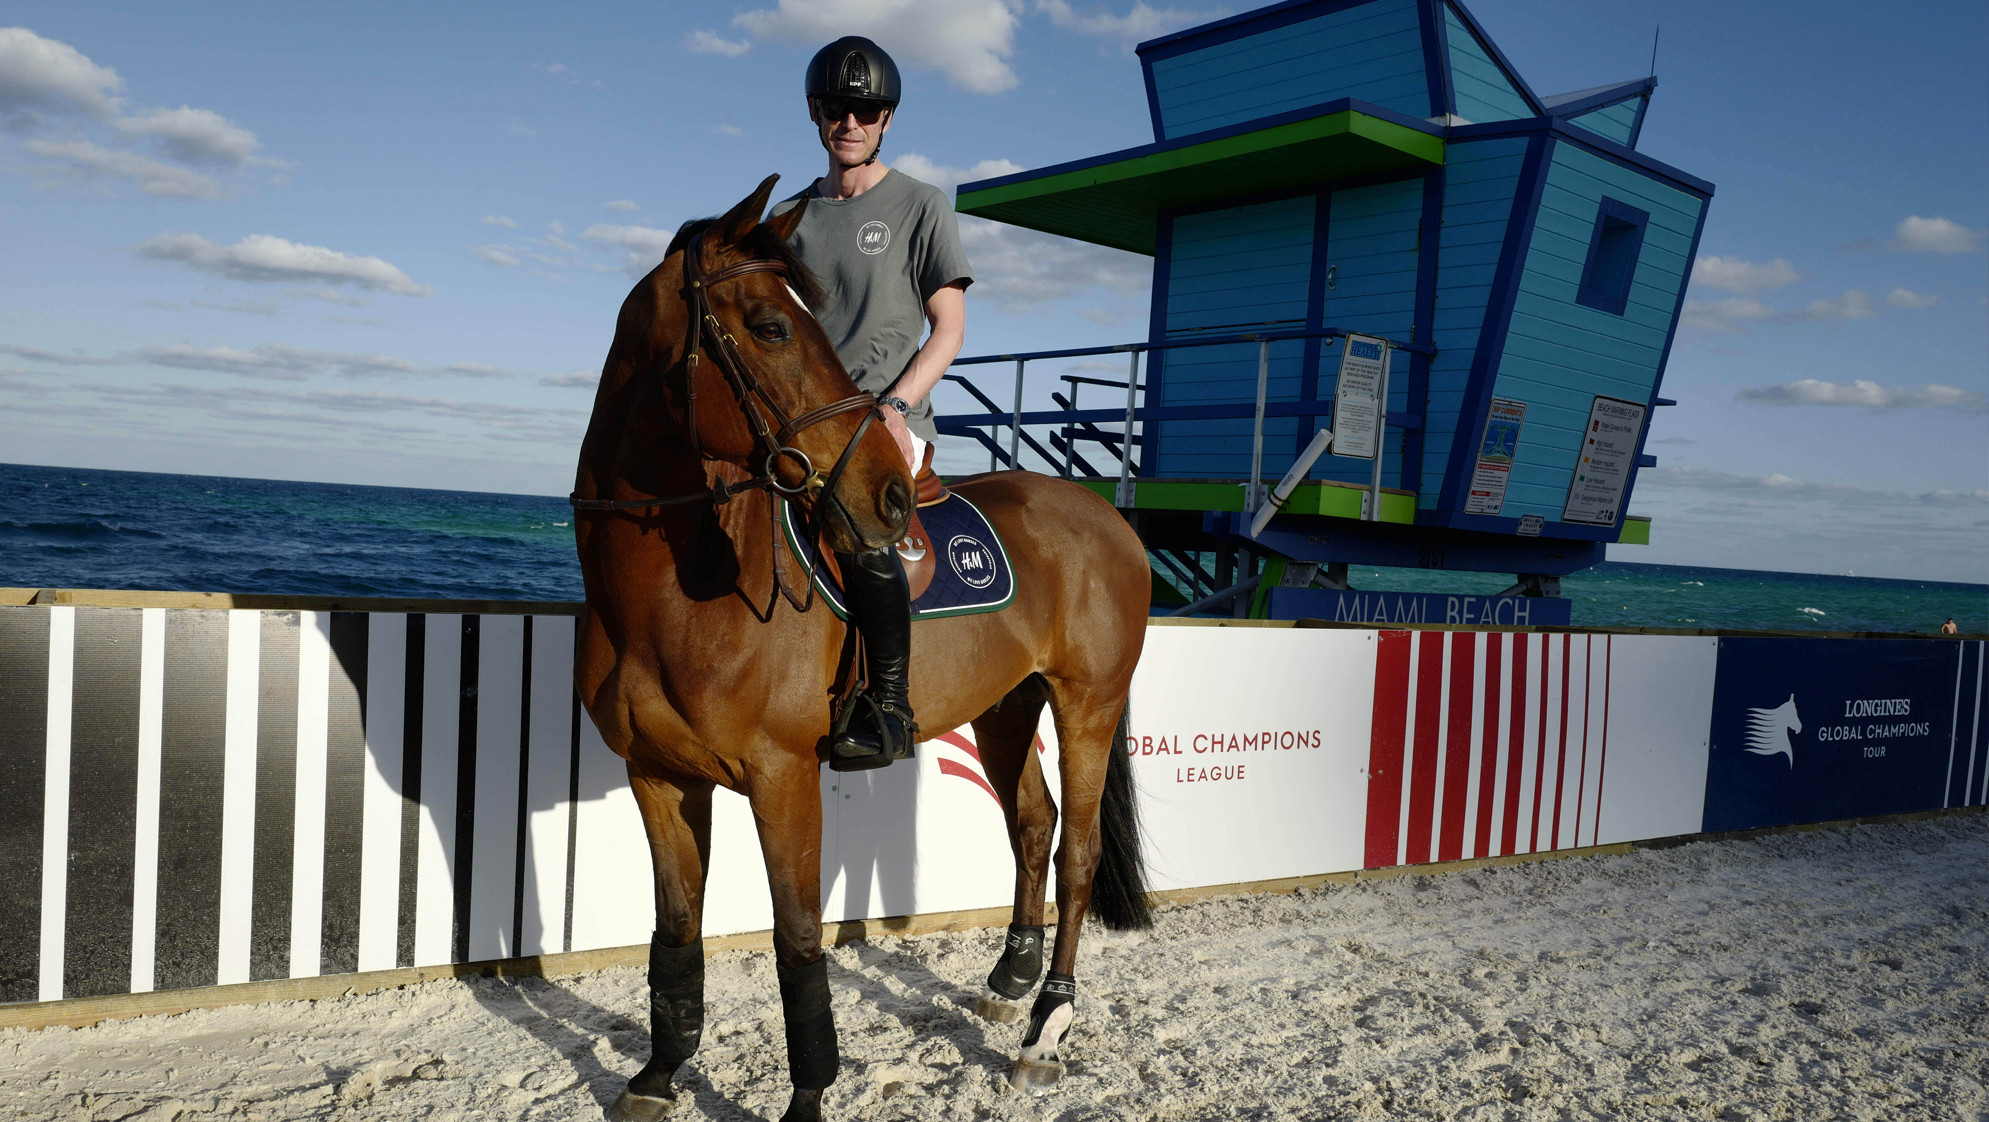 Guery searching for another win with horse power aplenty at Longines Global Champions Tour event in Miami Beach